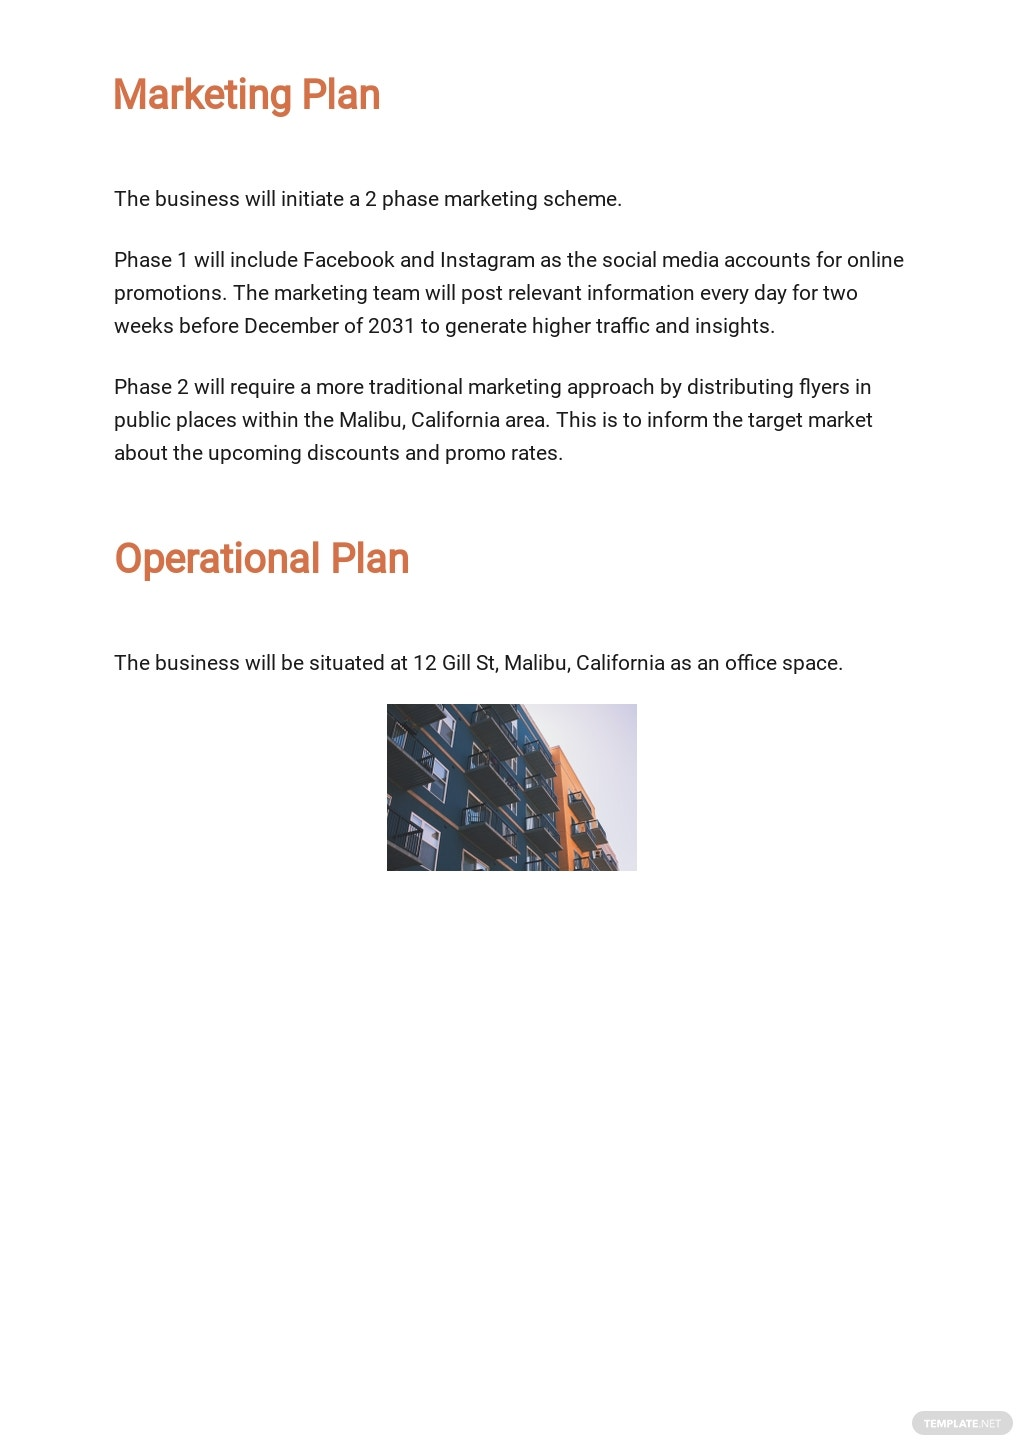 Construction Repair Business Plan Template [Free PDF] - Google Docs, Word, Apple Pages